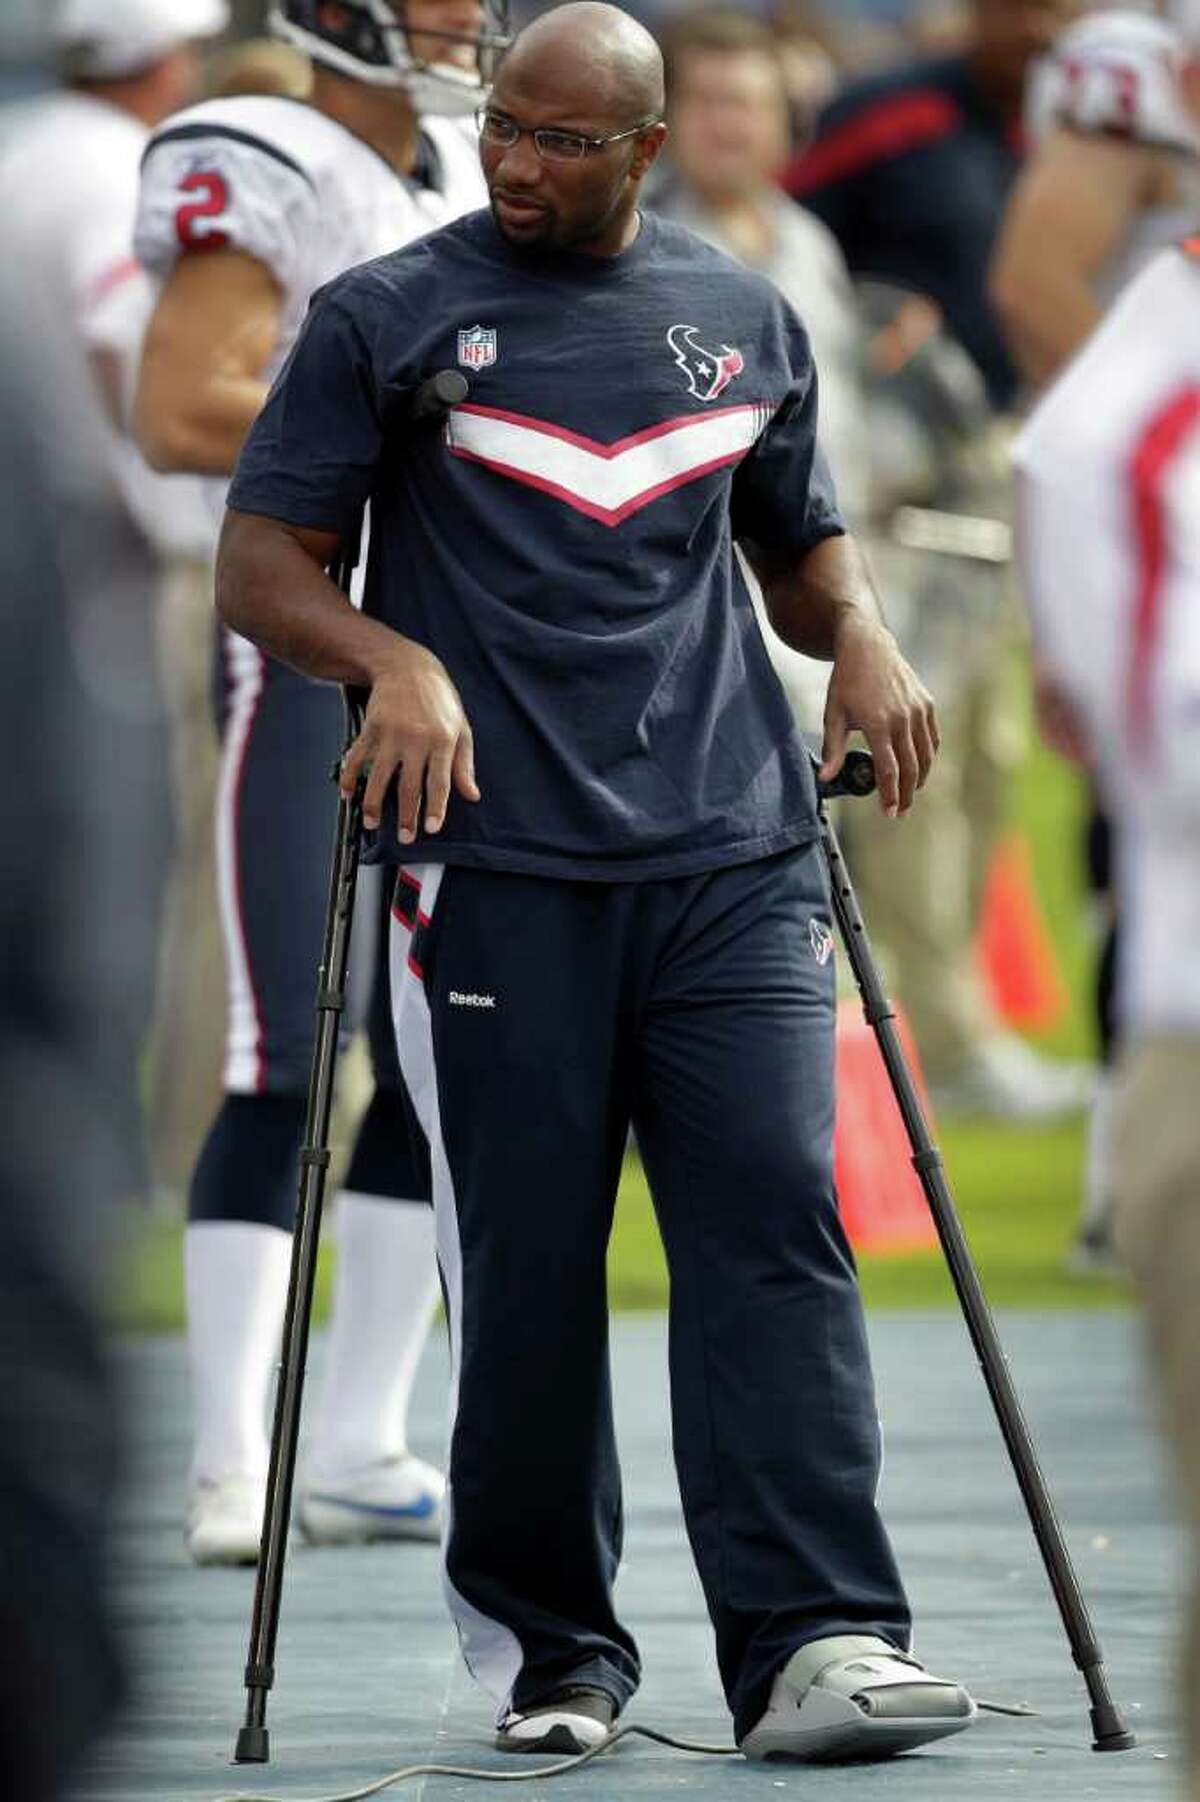 Houston Texans free safety Danieal Manning stands on the sidelines on crutches after suffering an injury to his leg during an NFL football game against the Tennessee Titans at LP Field Sunday, Oct. 23, 2011, in Nashville. The Texans beat the Titans 41-7.